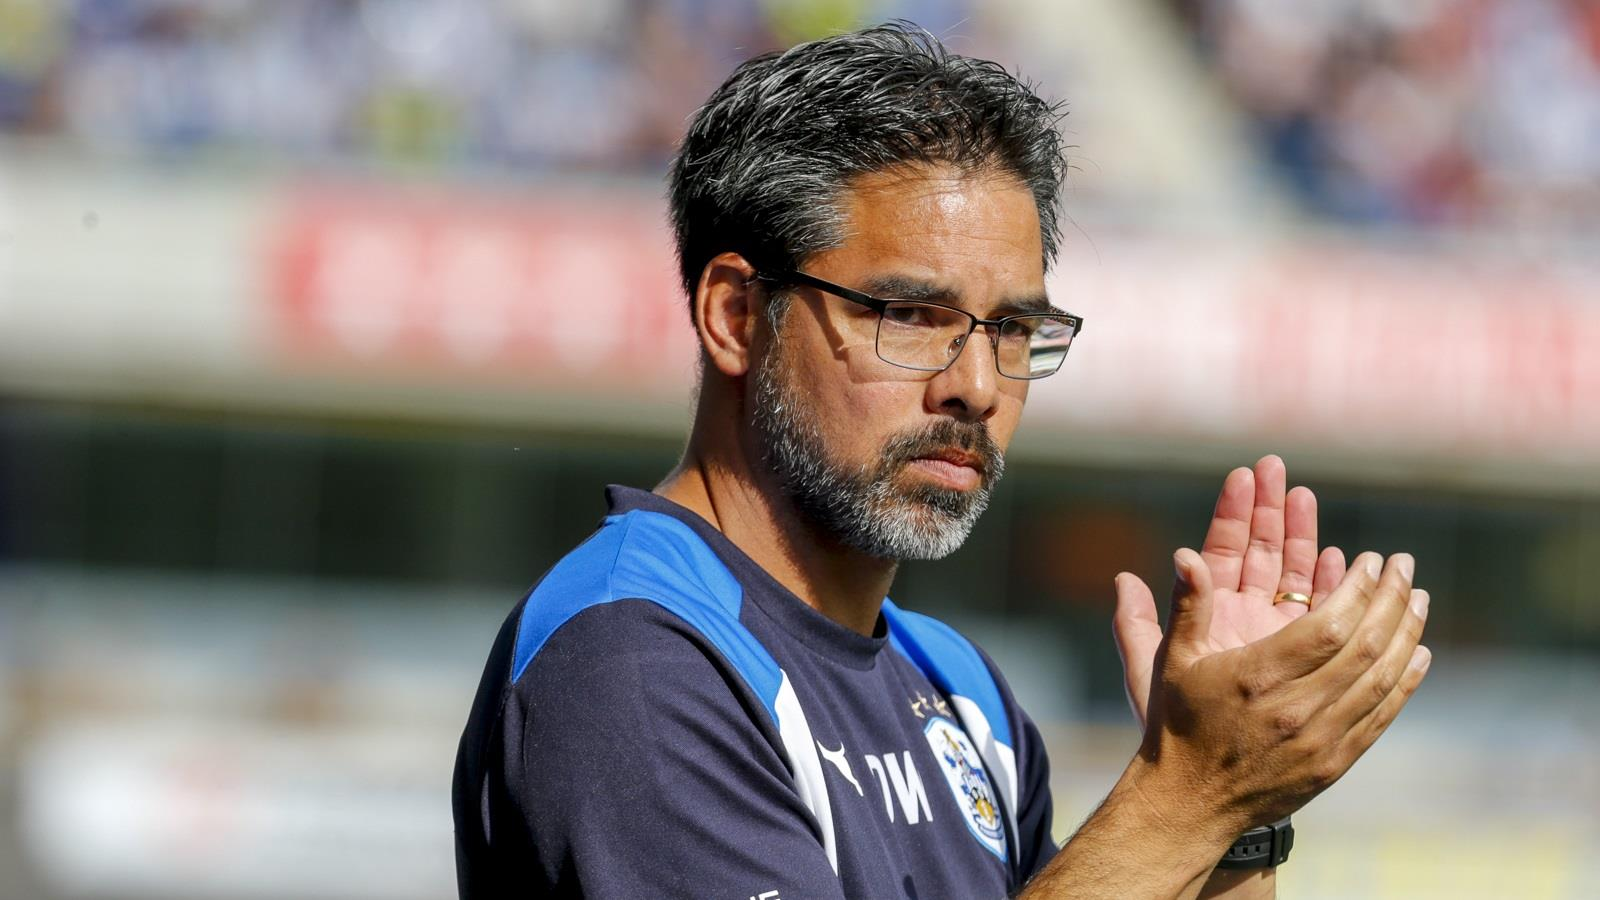 Listen To Text Messages >> DAVID WAGNER ON BBC RADIO LEEDS ON WEDNESDAY - News - Huddersfield Town